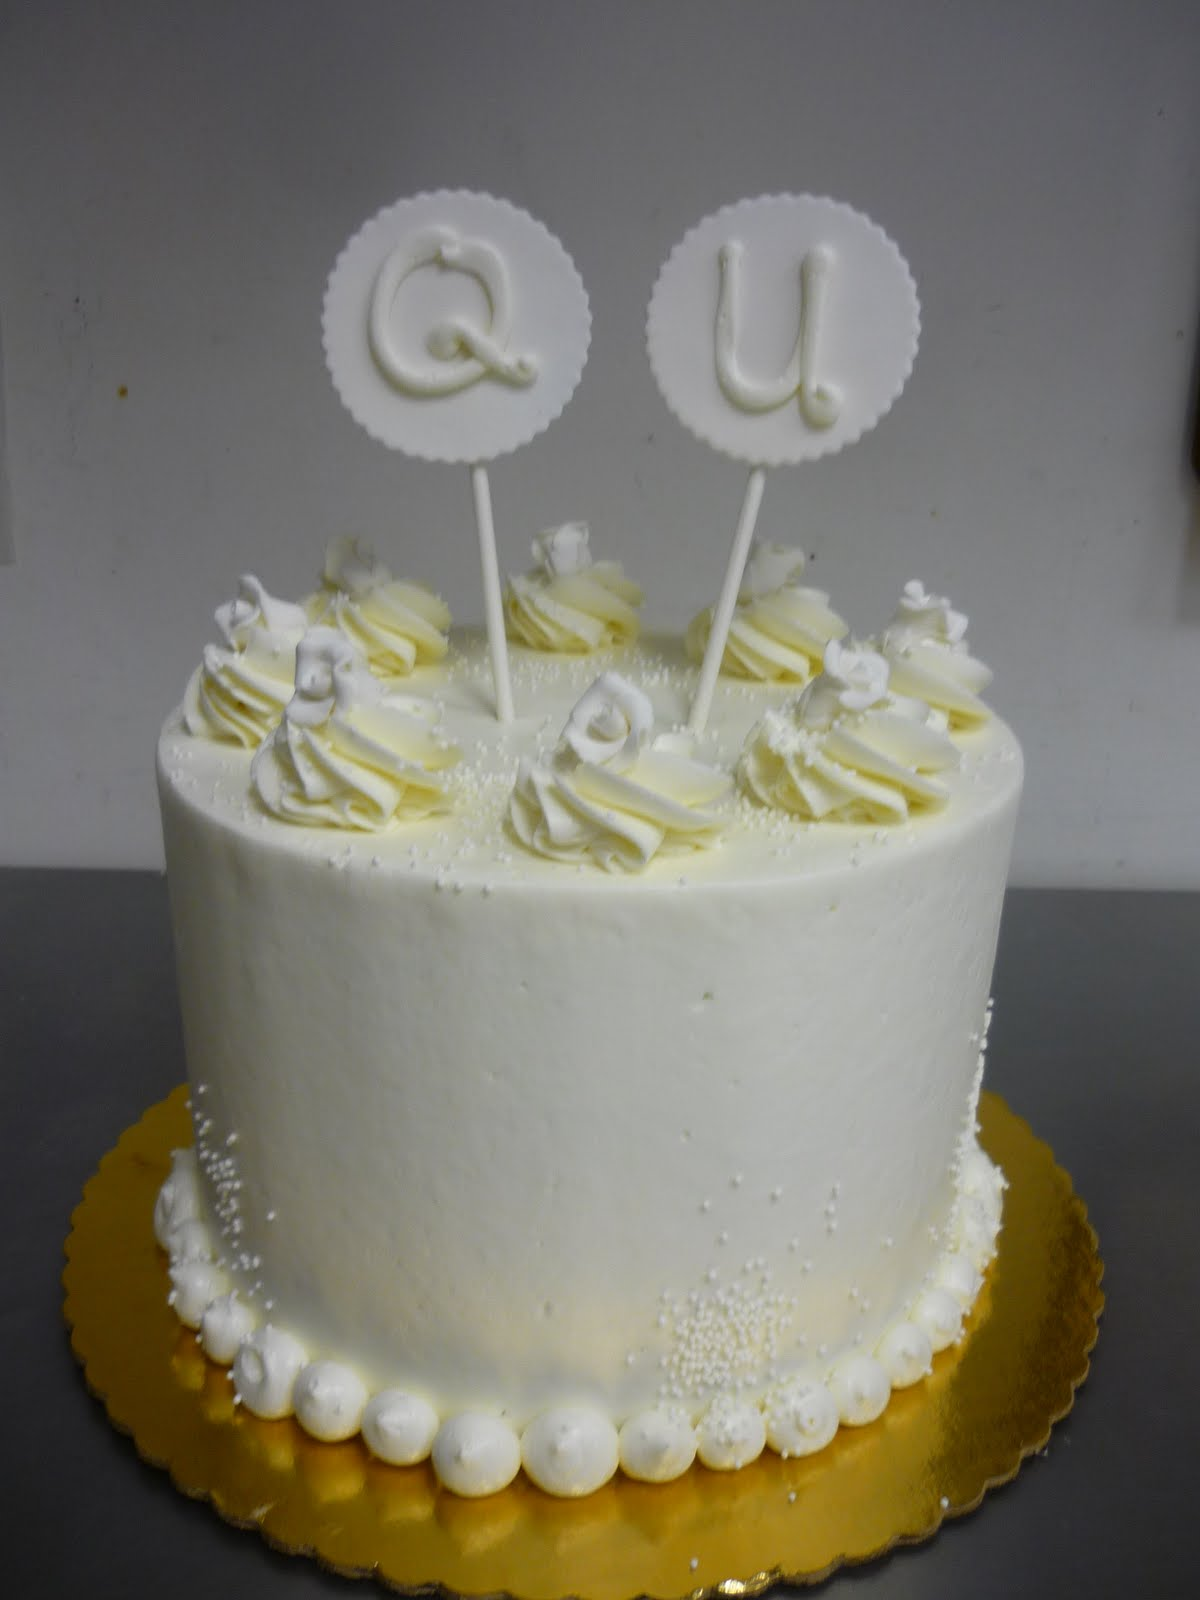 Artisan Bake Shop Round Buttercream Cake The Marriage Of Q Amp U